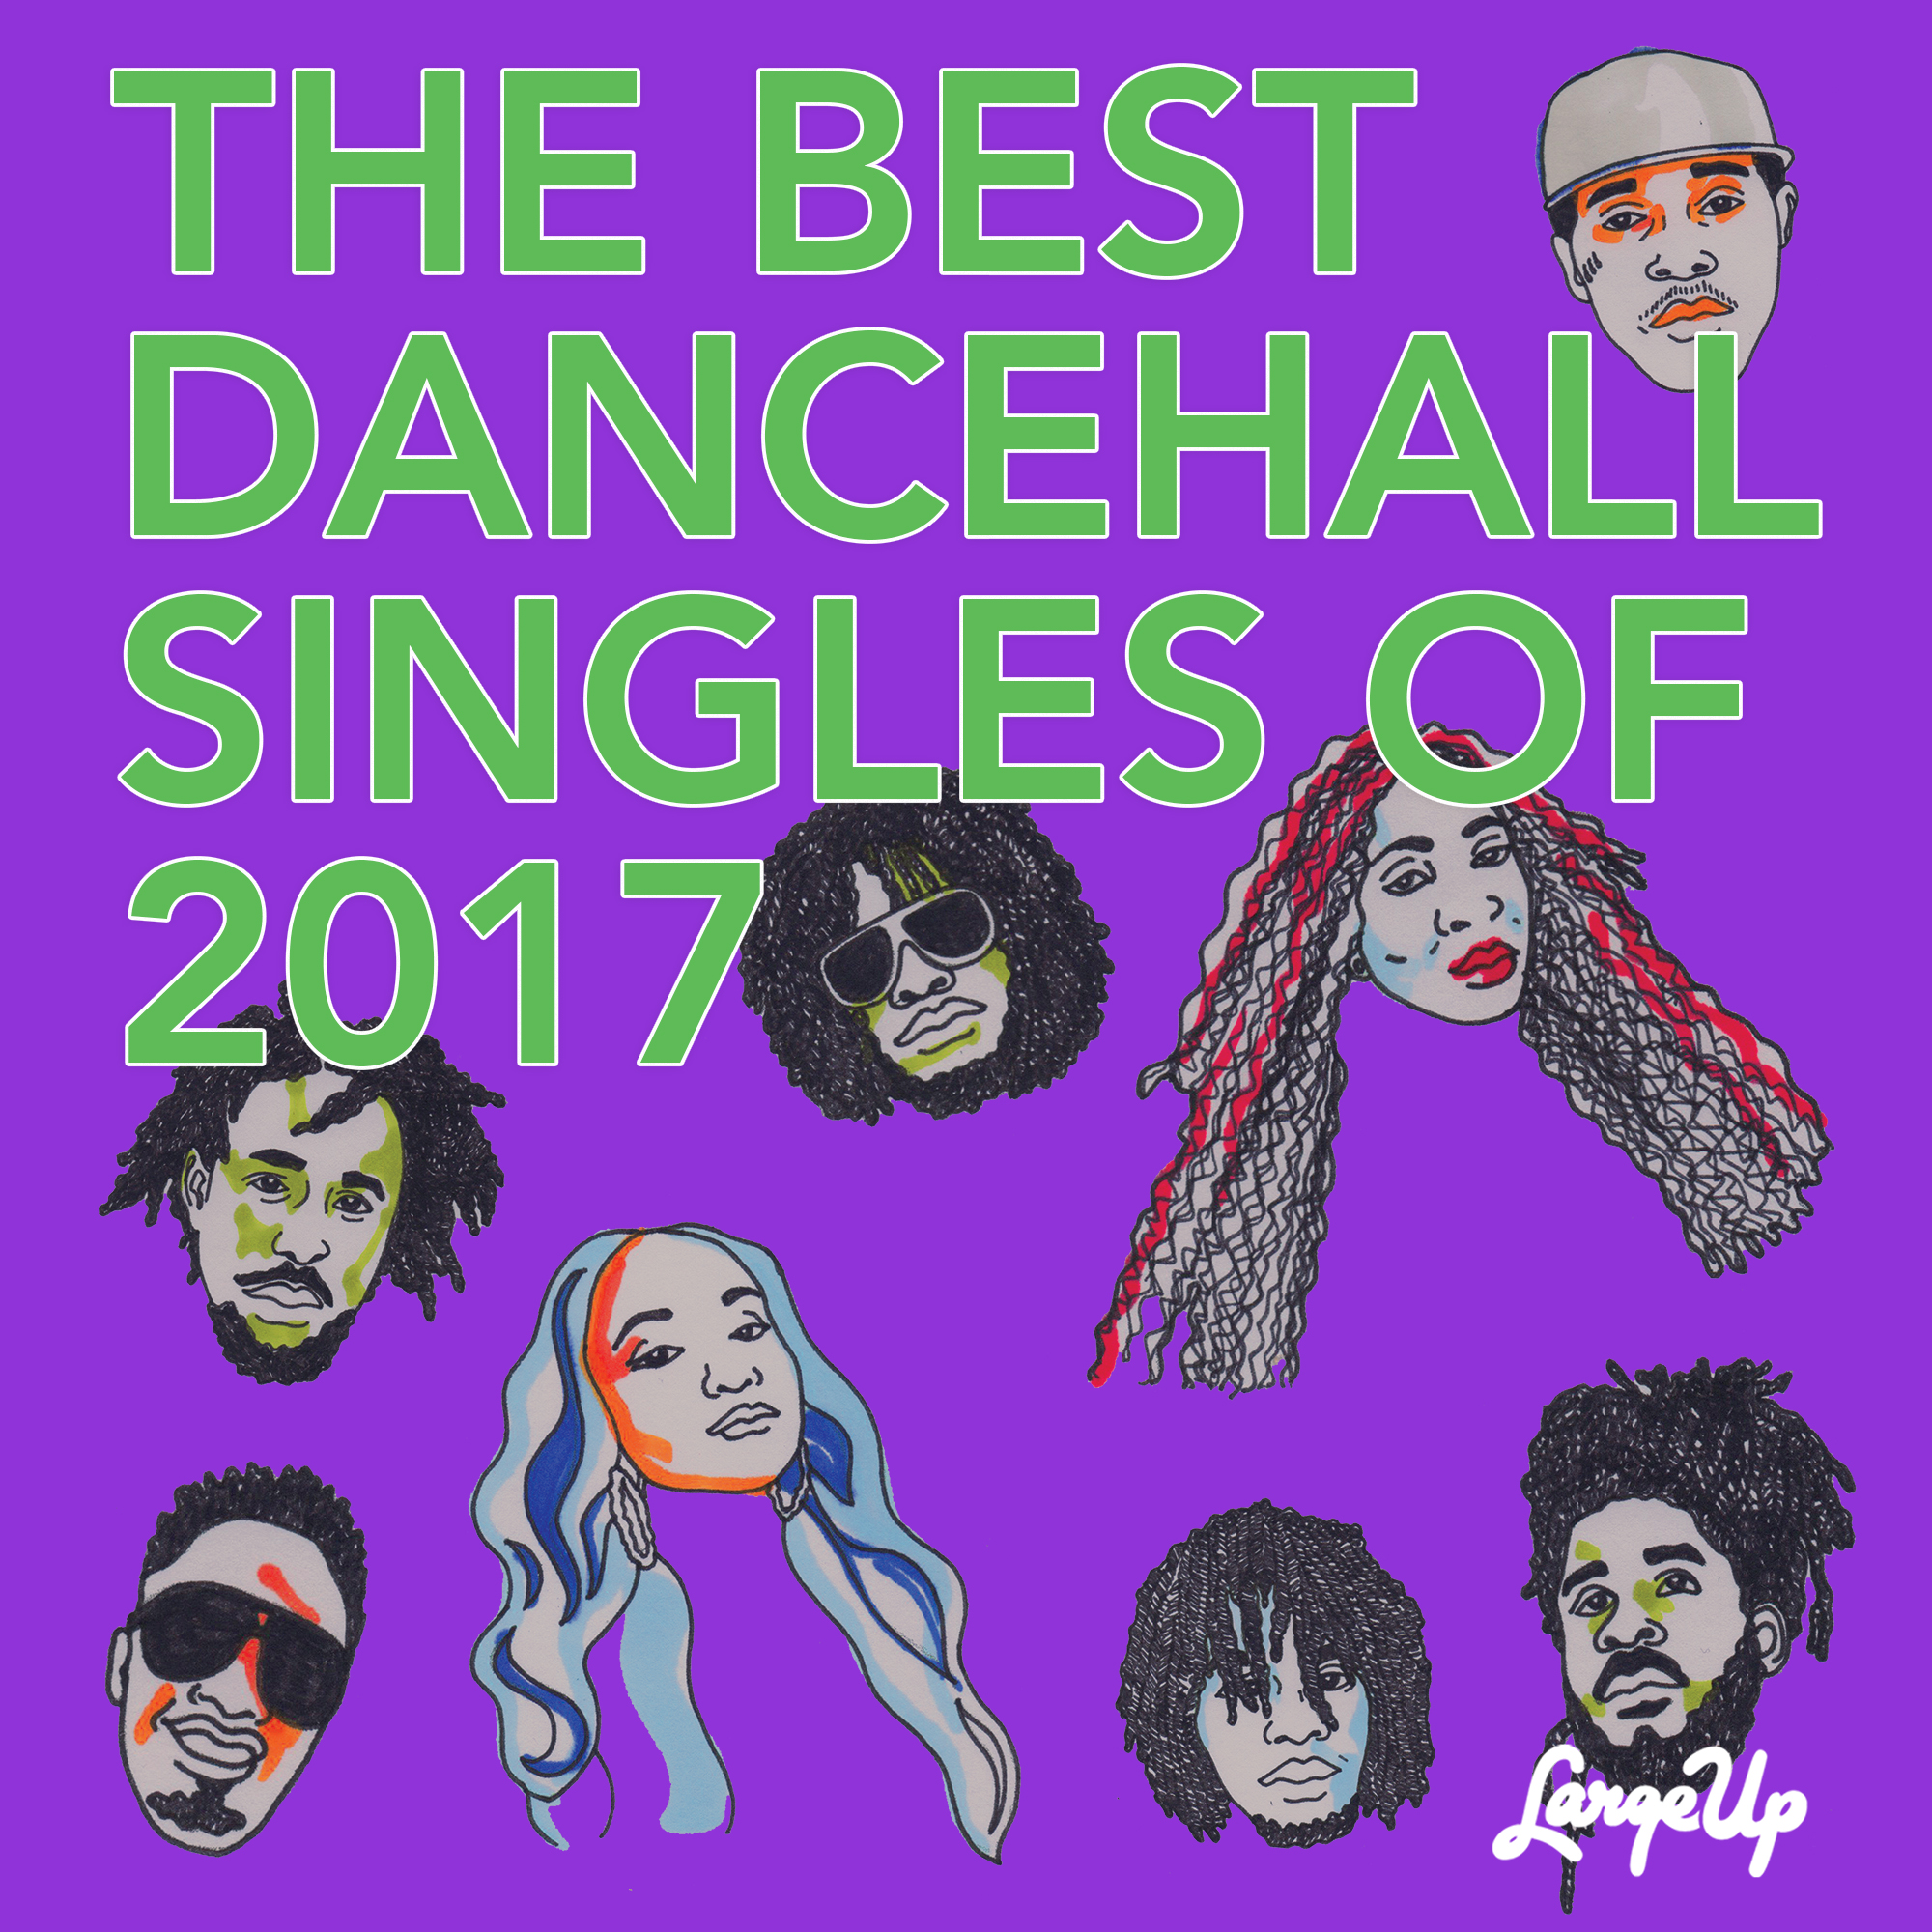 LargeUp.com - The Best Dancehall Singles of 2017